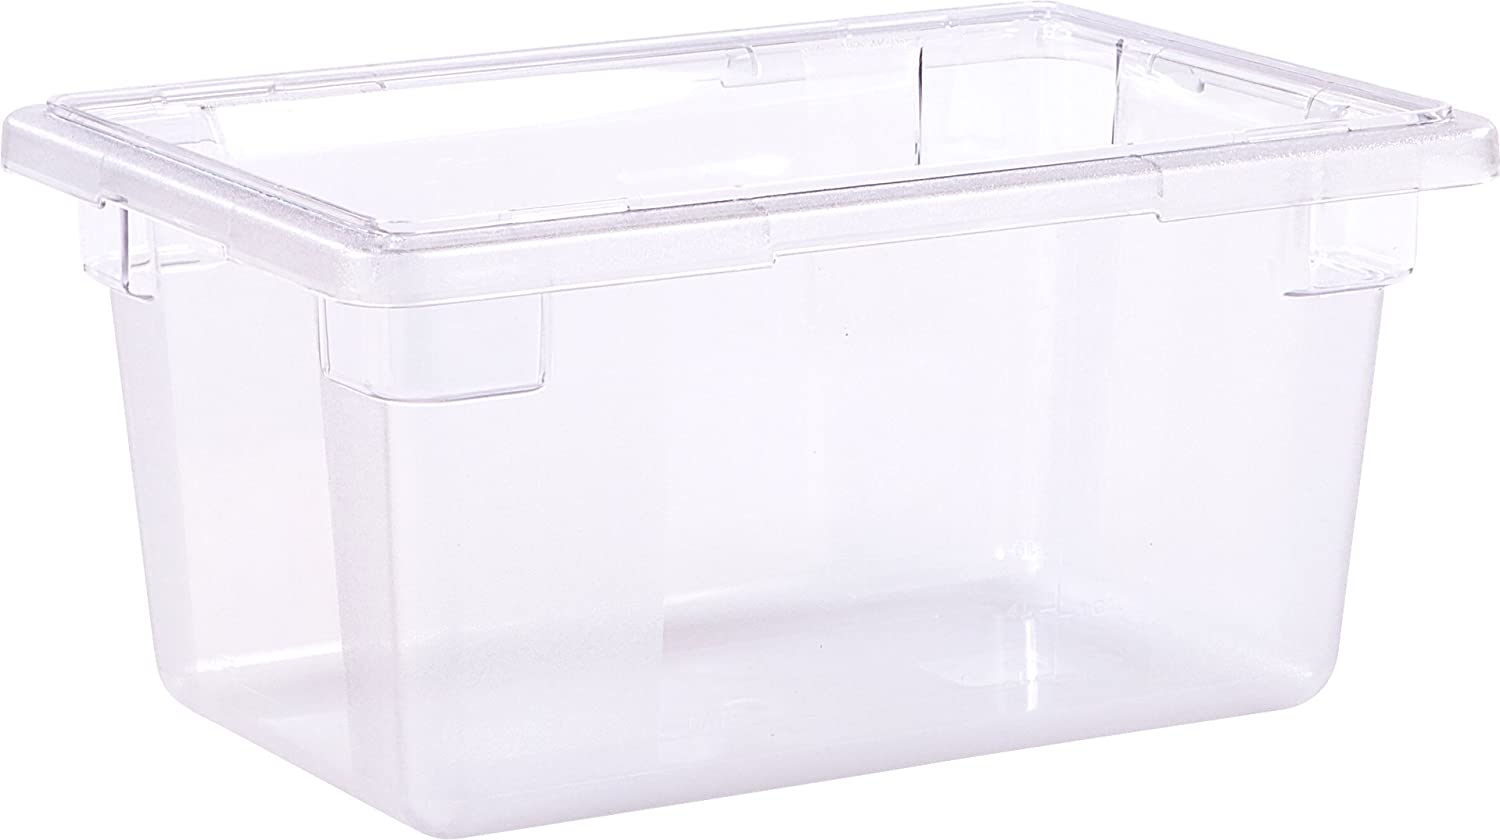 Carlisle 1061207 StorPlus Stackable Food Storage Container, 5 Gallon Tall, Clear